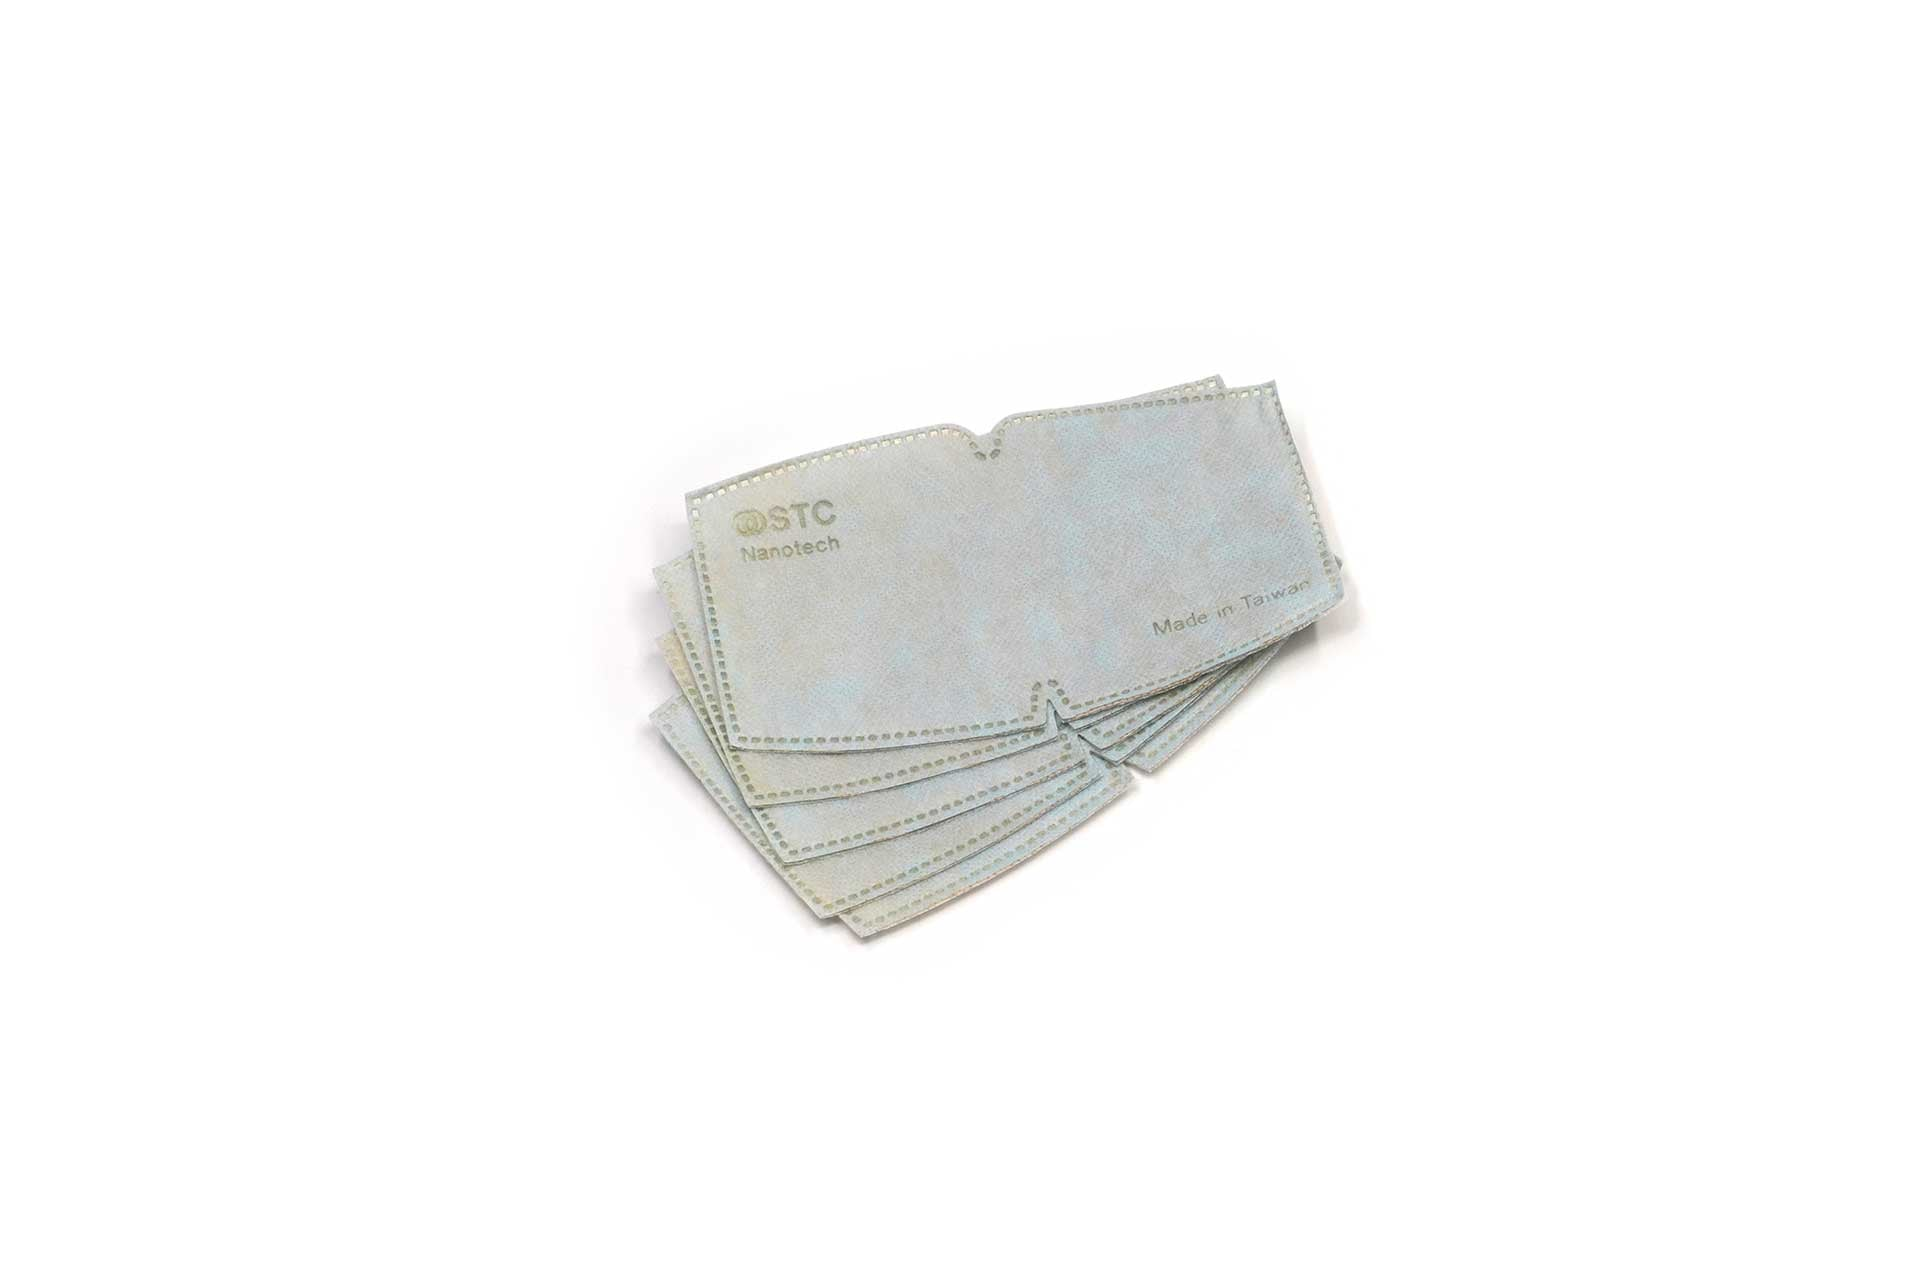 Antimicrobial Mask Filter Inserts: Individual 5 Pack